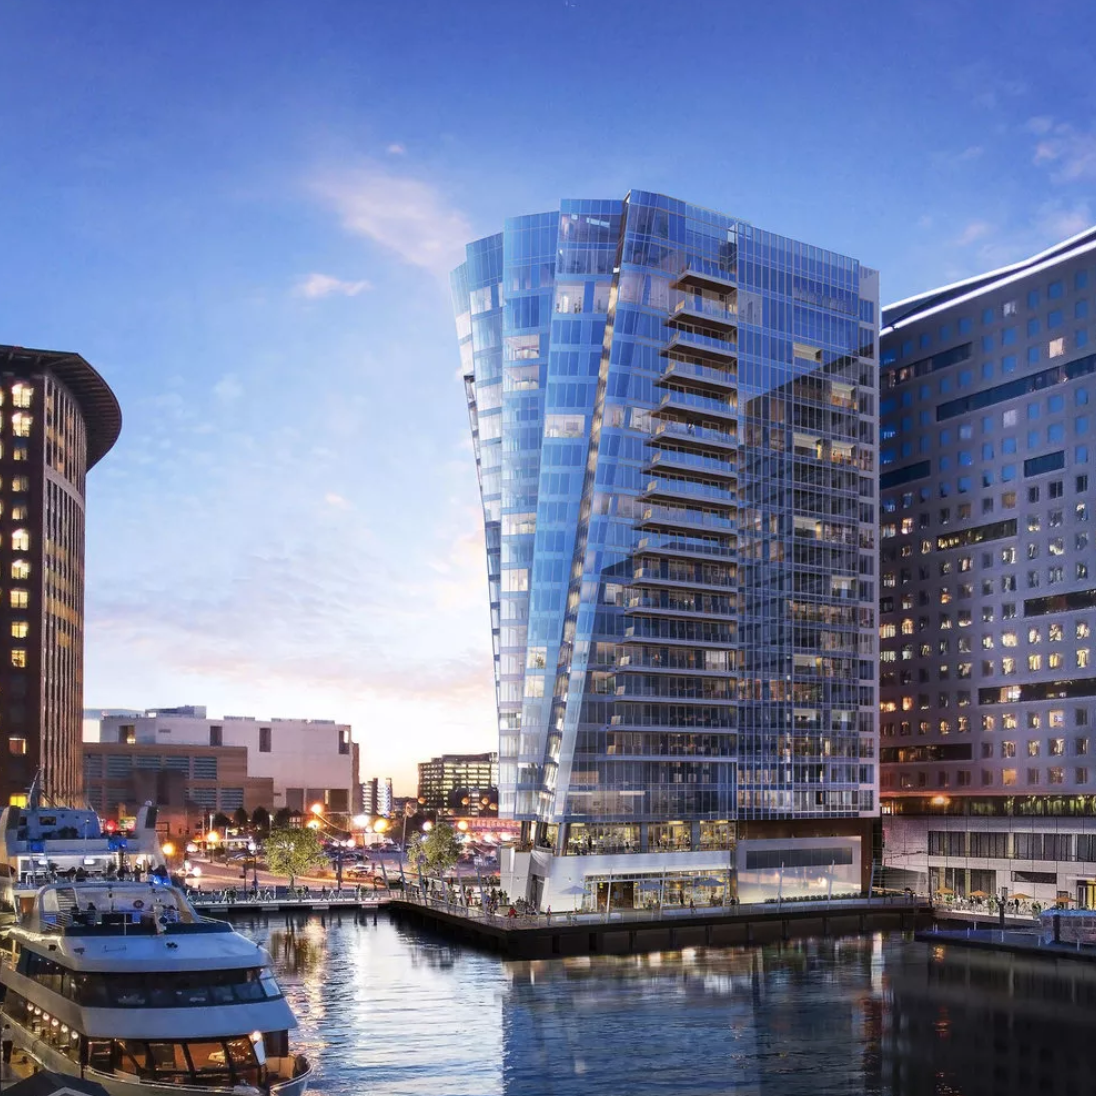 St Regis Residences in Boston's Seaport District